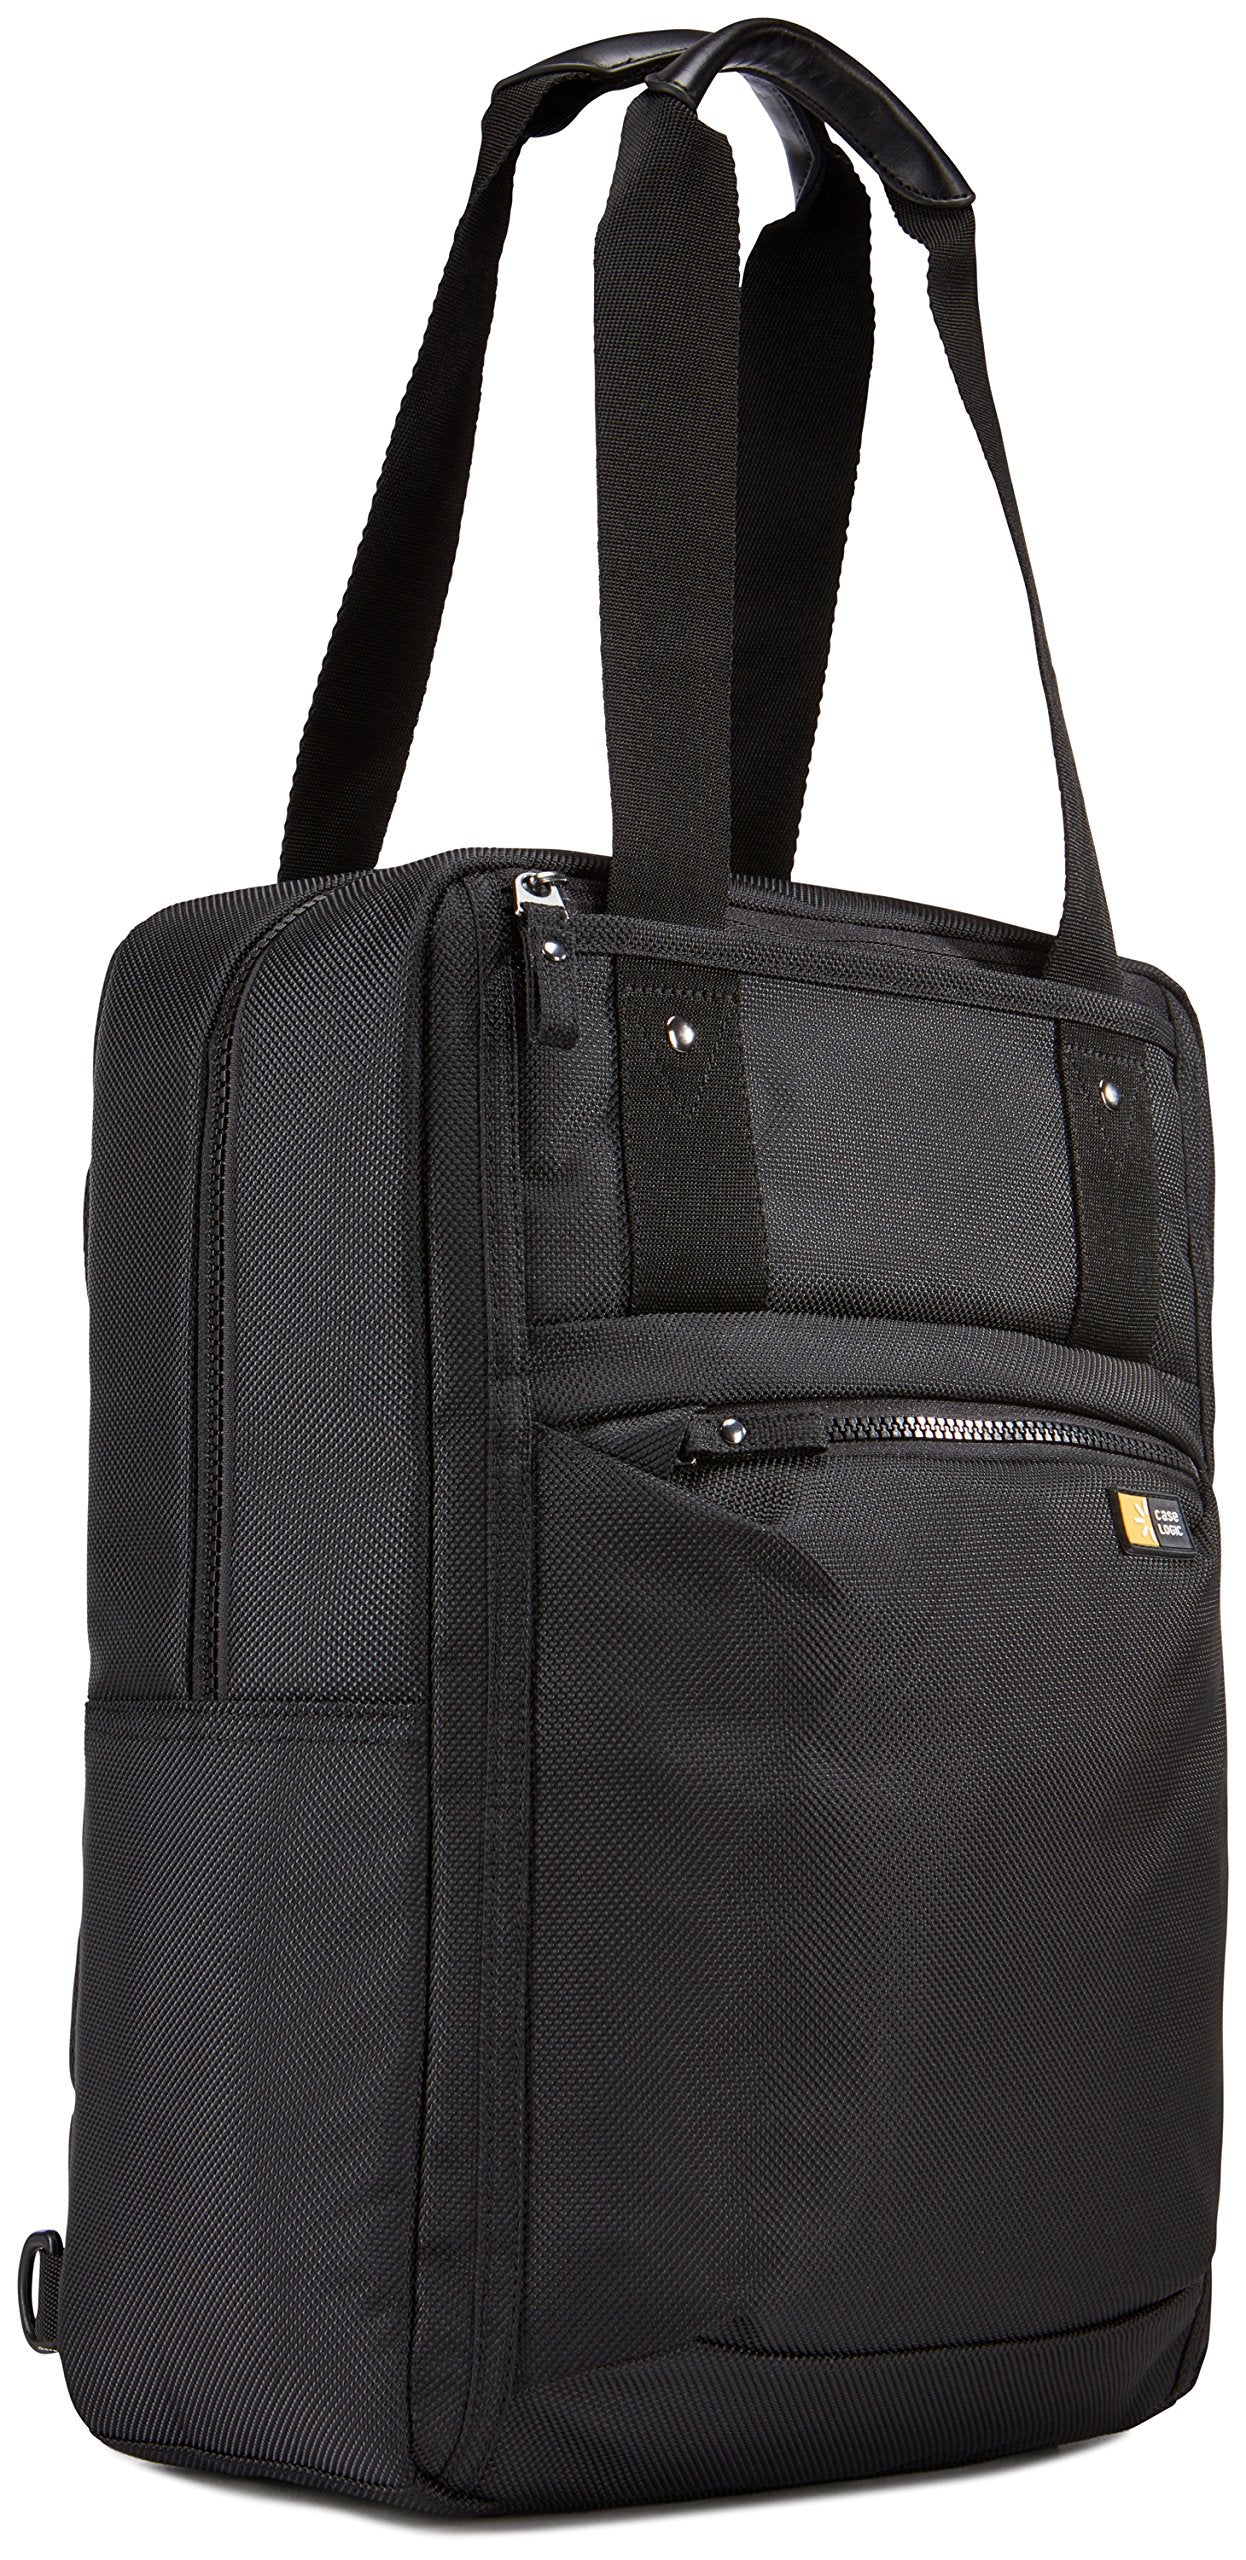 Case Logic Bryker 19L Convertible Laptop Backpacks, Black (3203496) - yrGear